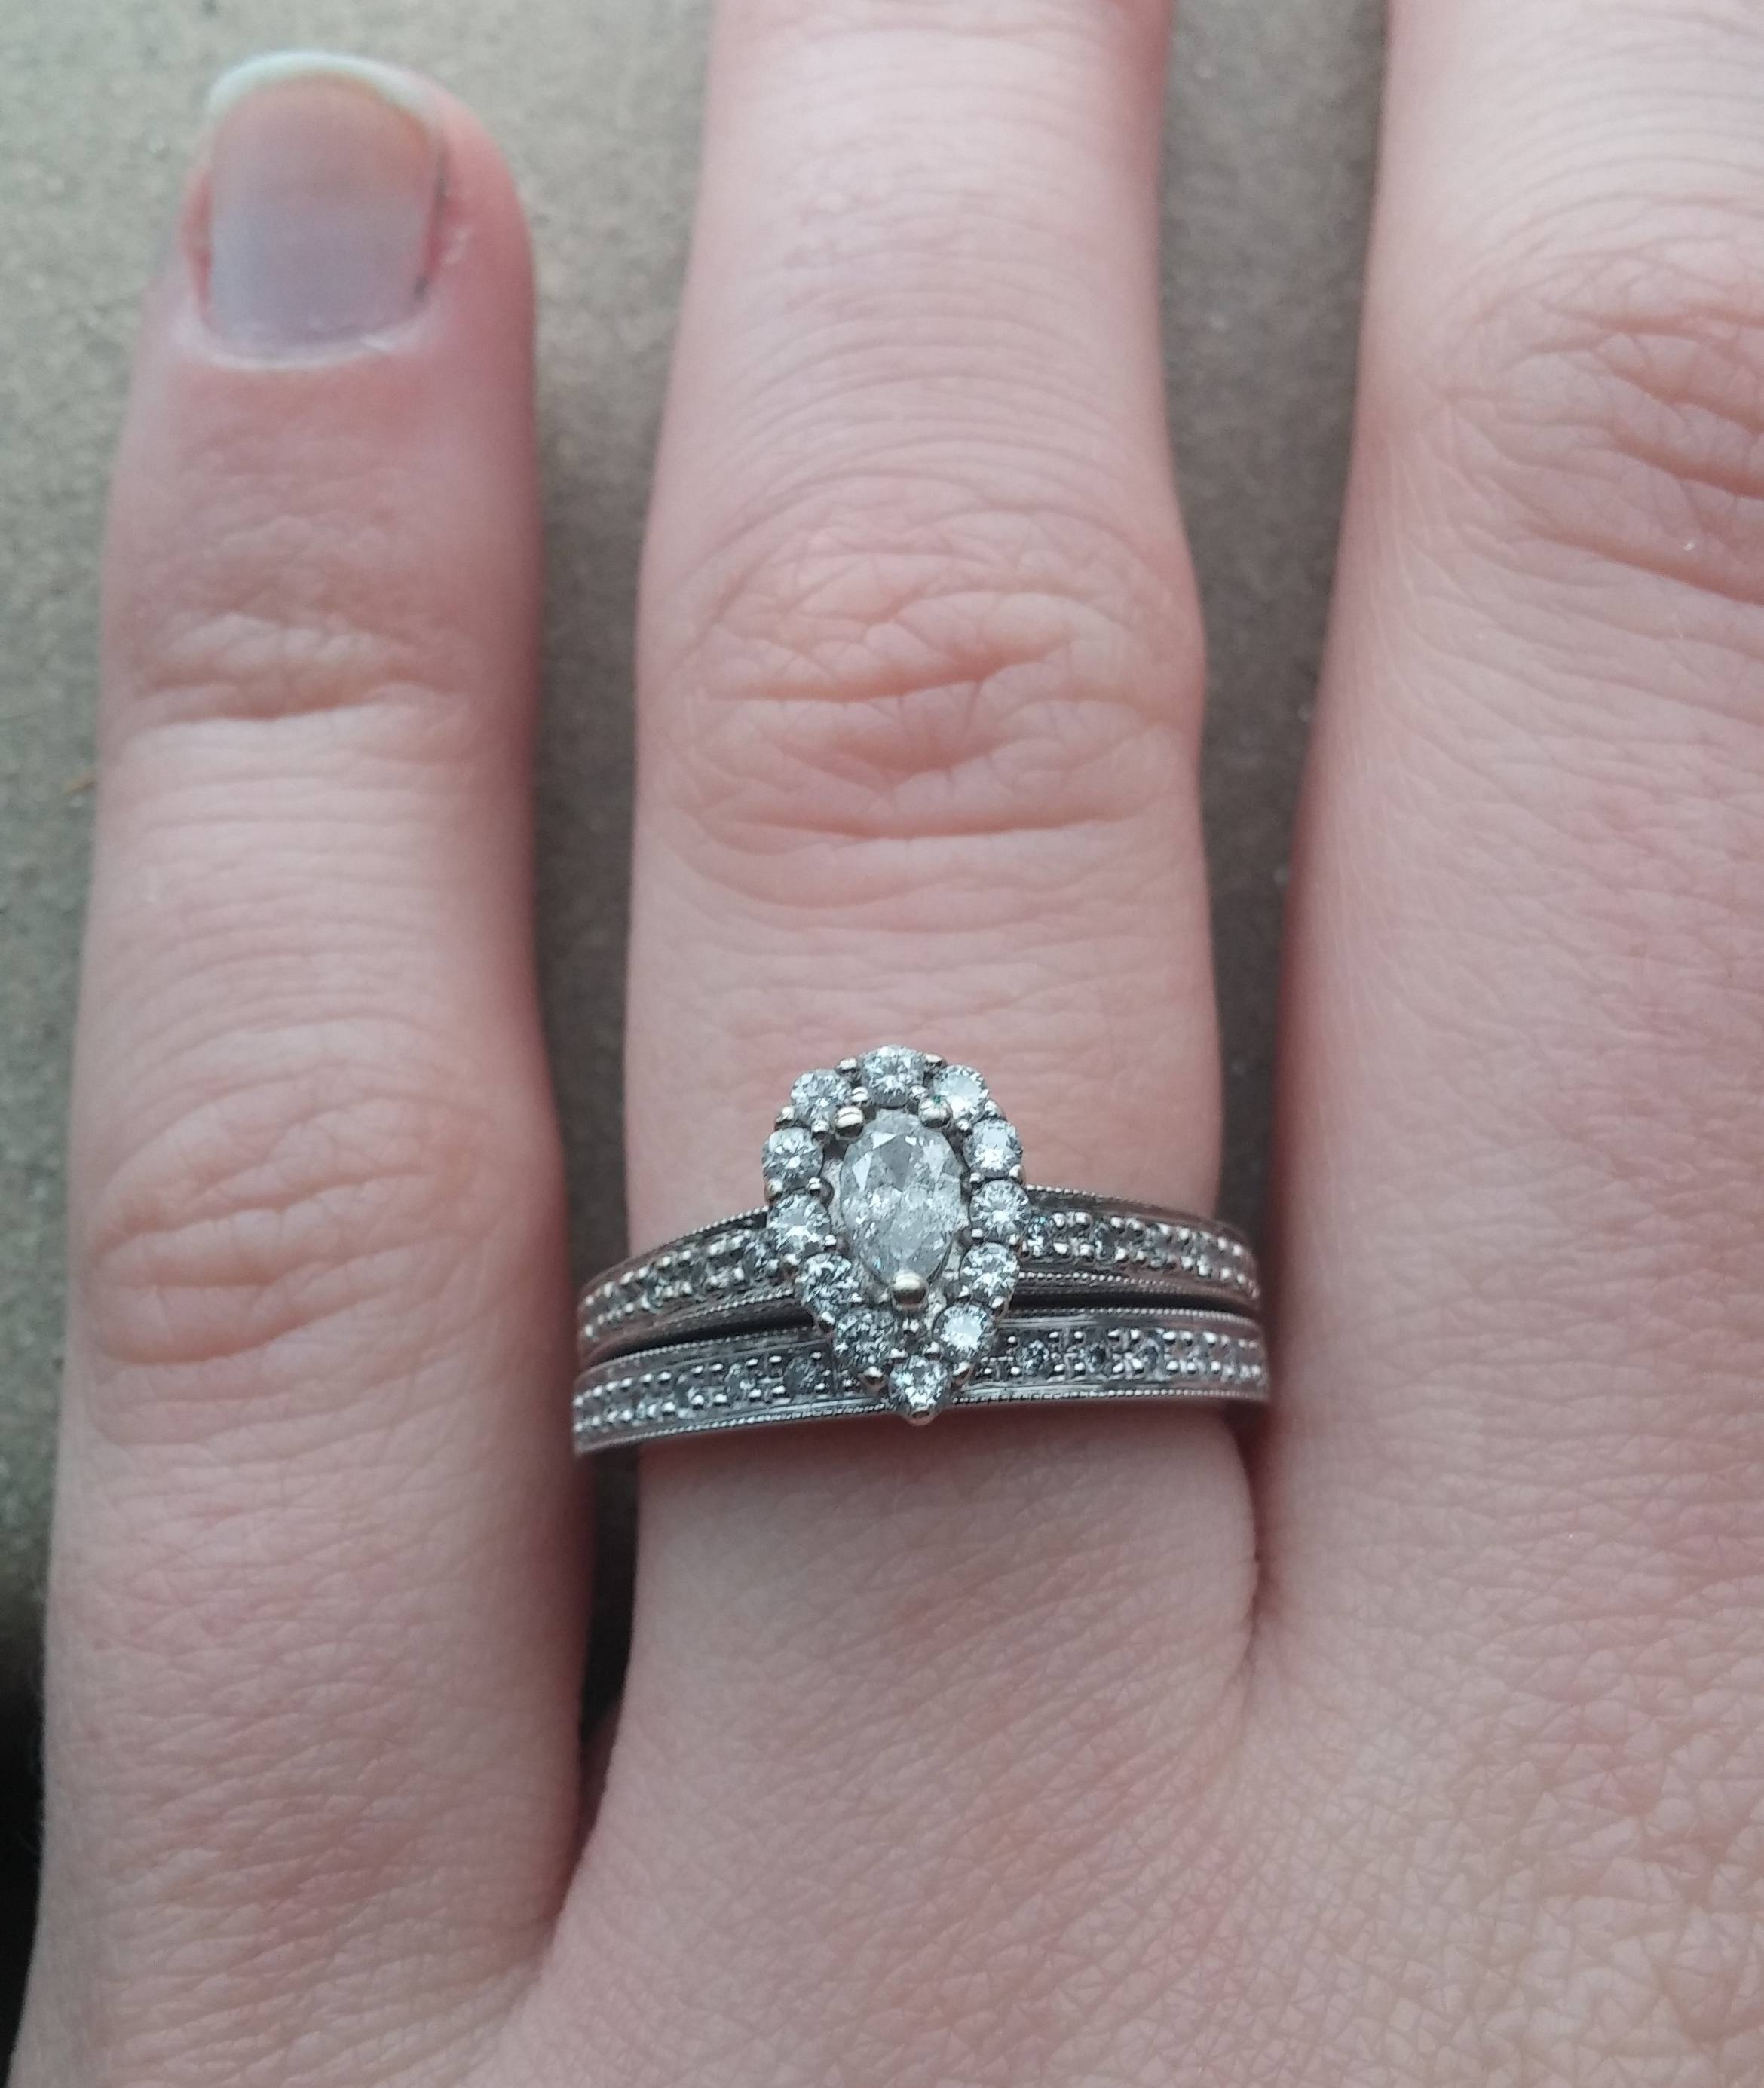 Halo Engagement Ring, Finger Size 6 8, With Petite Center Diamond Regarding Small Size Engagement Rings (Gallery 8 of 15)